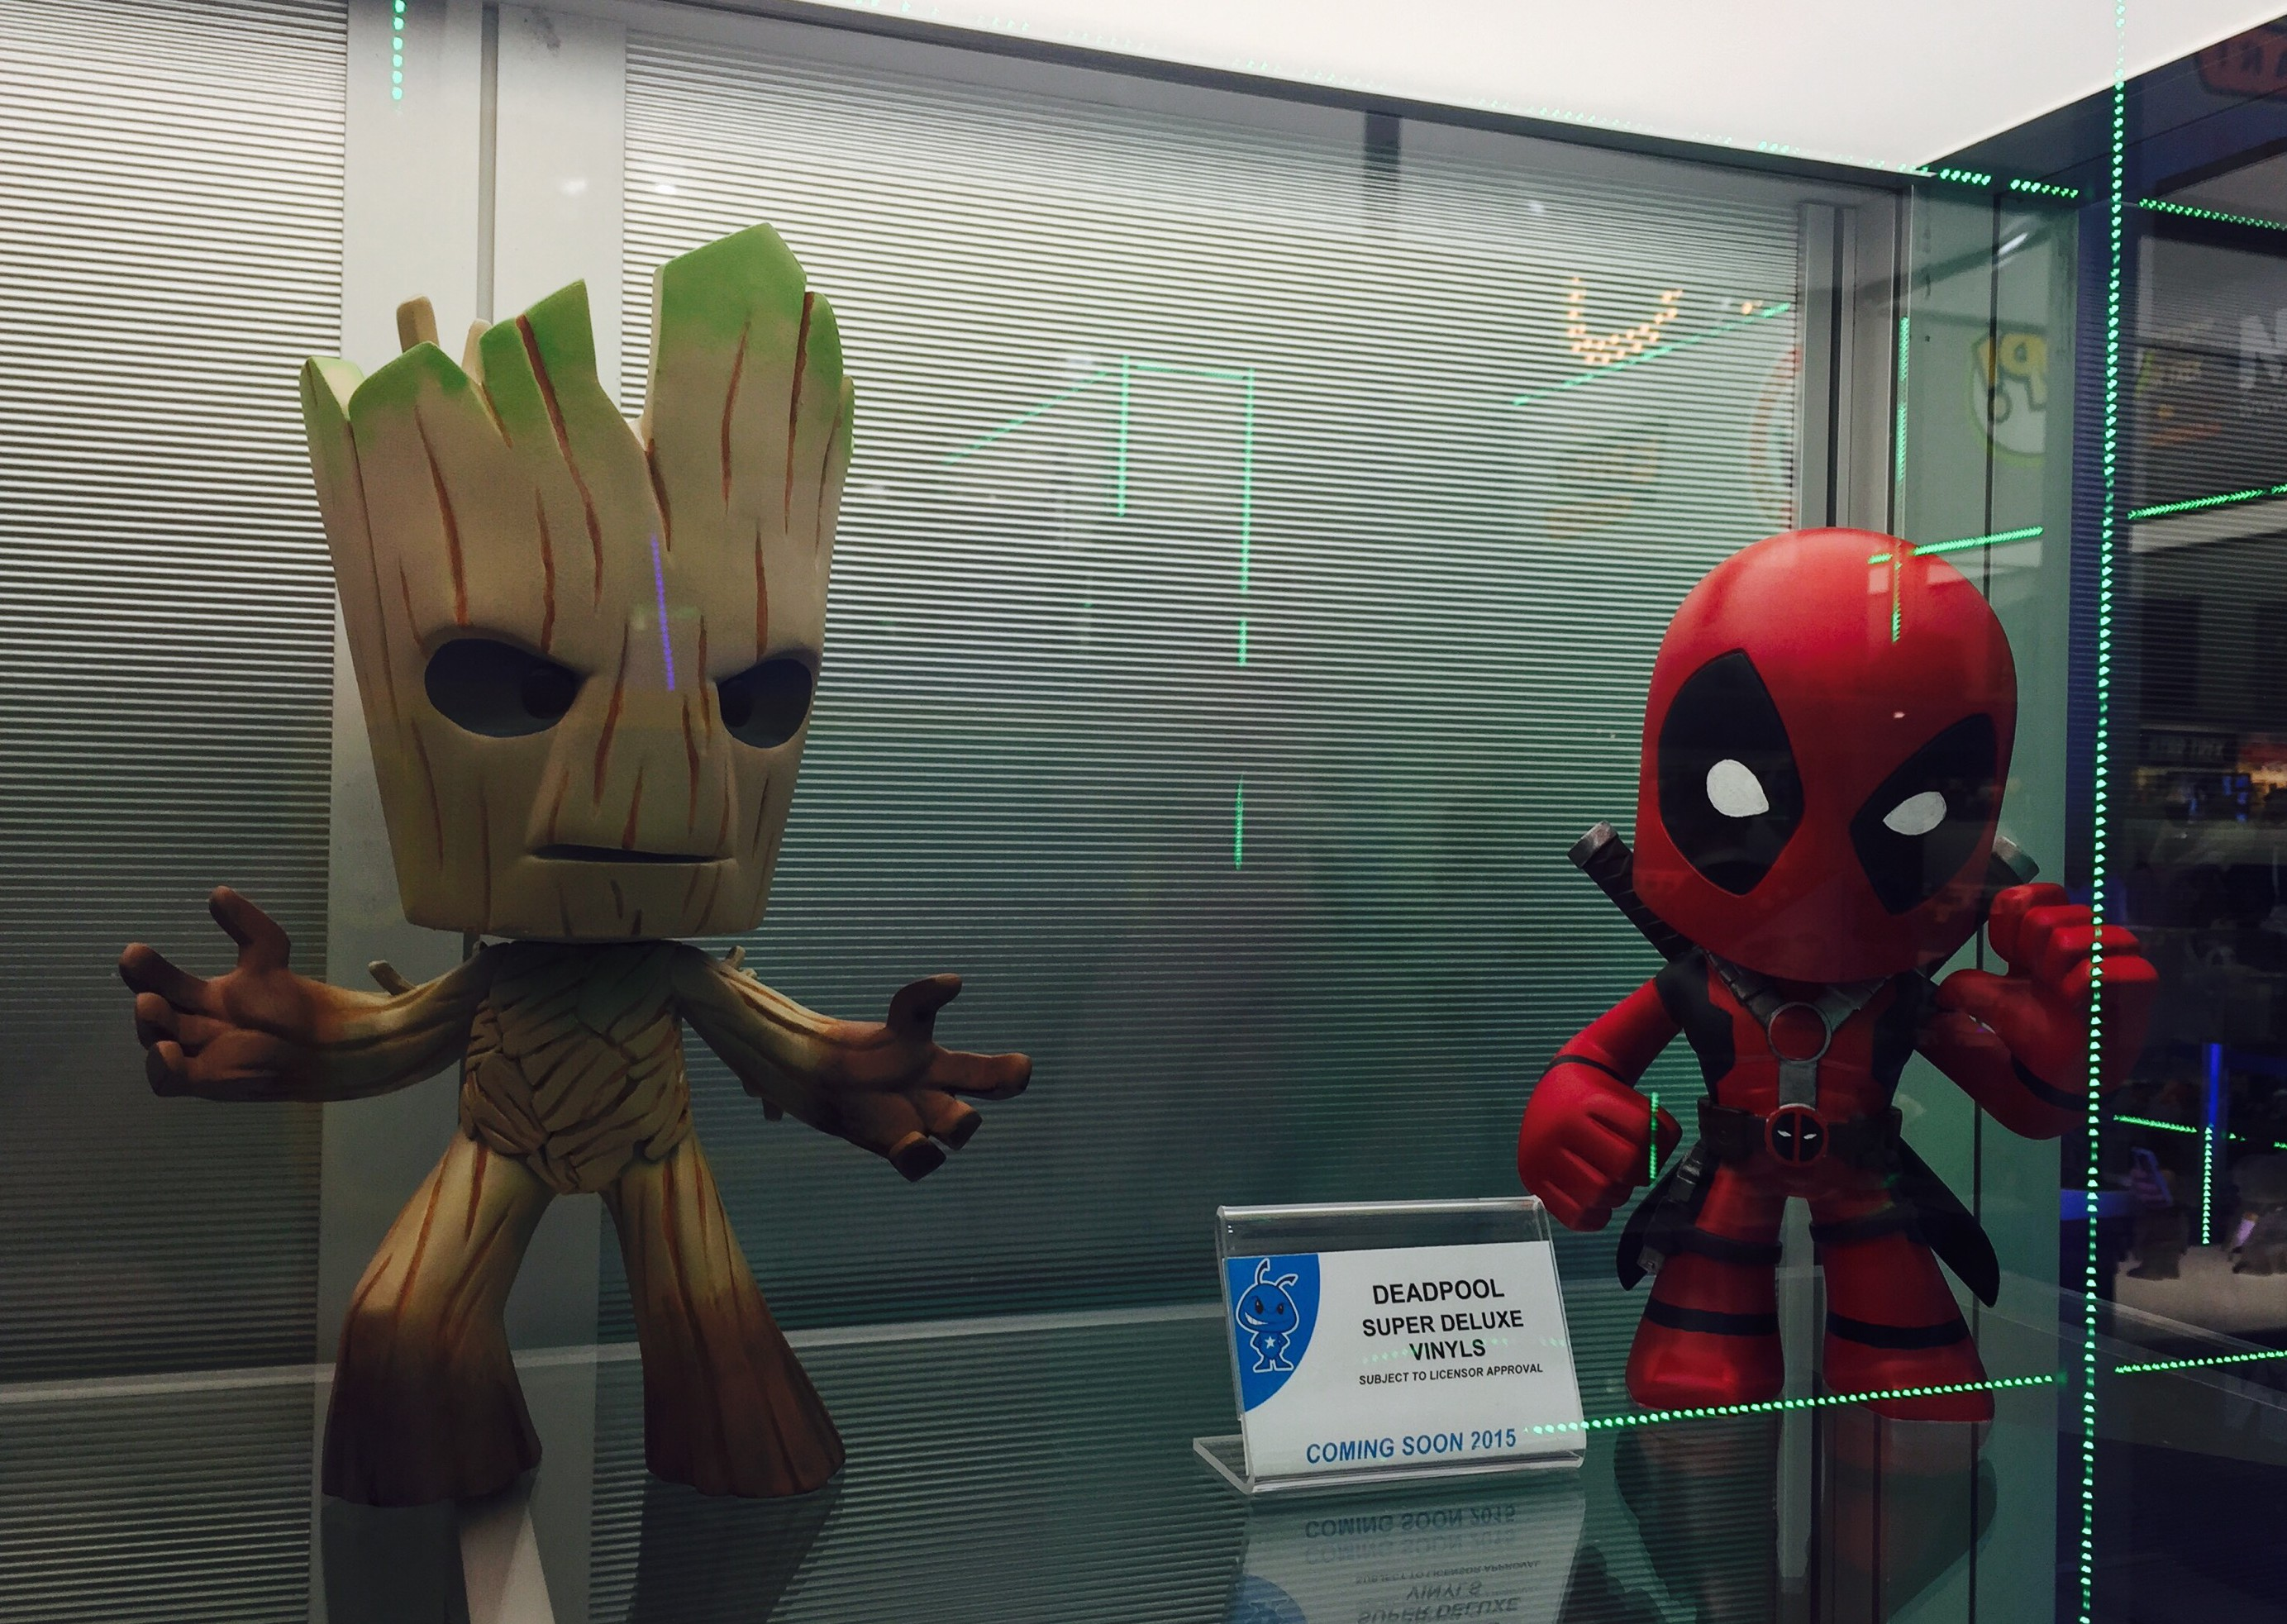 Toy Fair Vinyl Sugar Super Deluxe Deadpool Groot Rocket